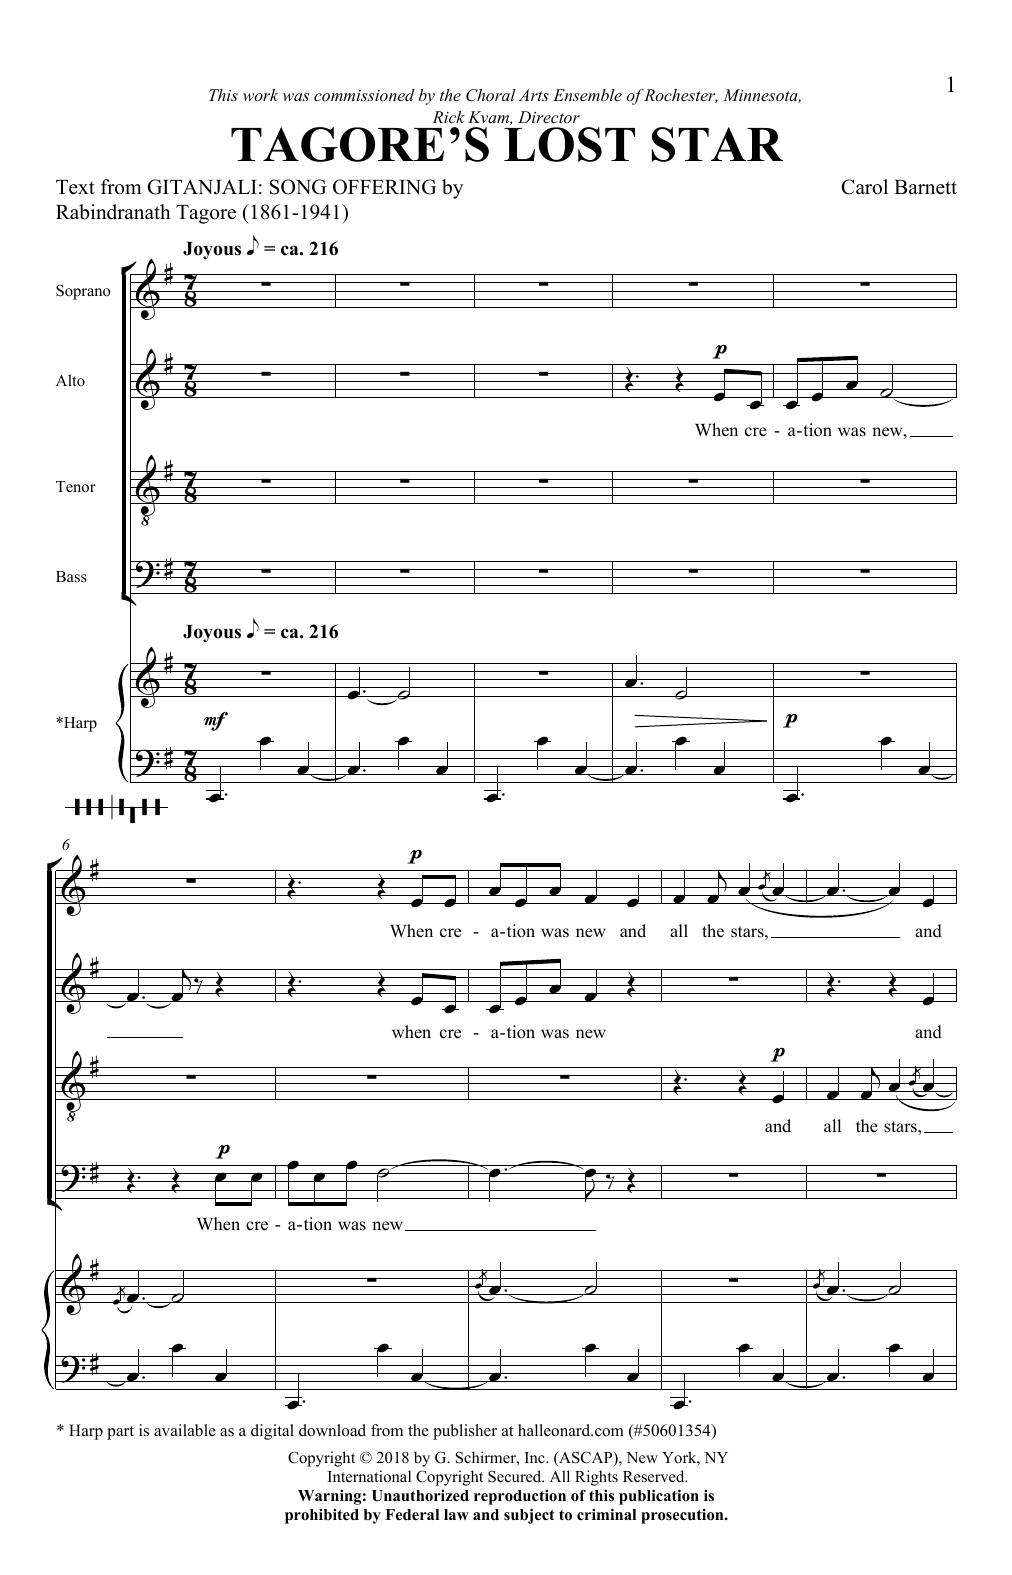 Tagore's Lost Star Sheet Music